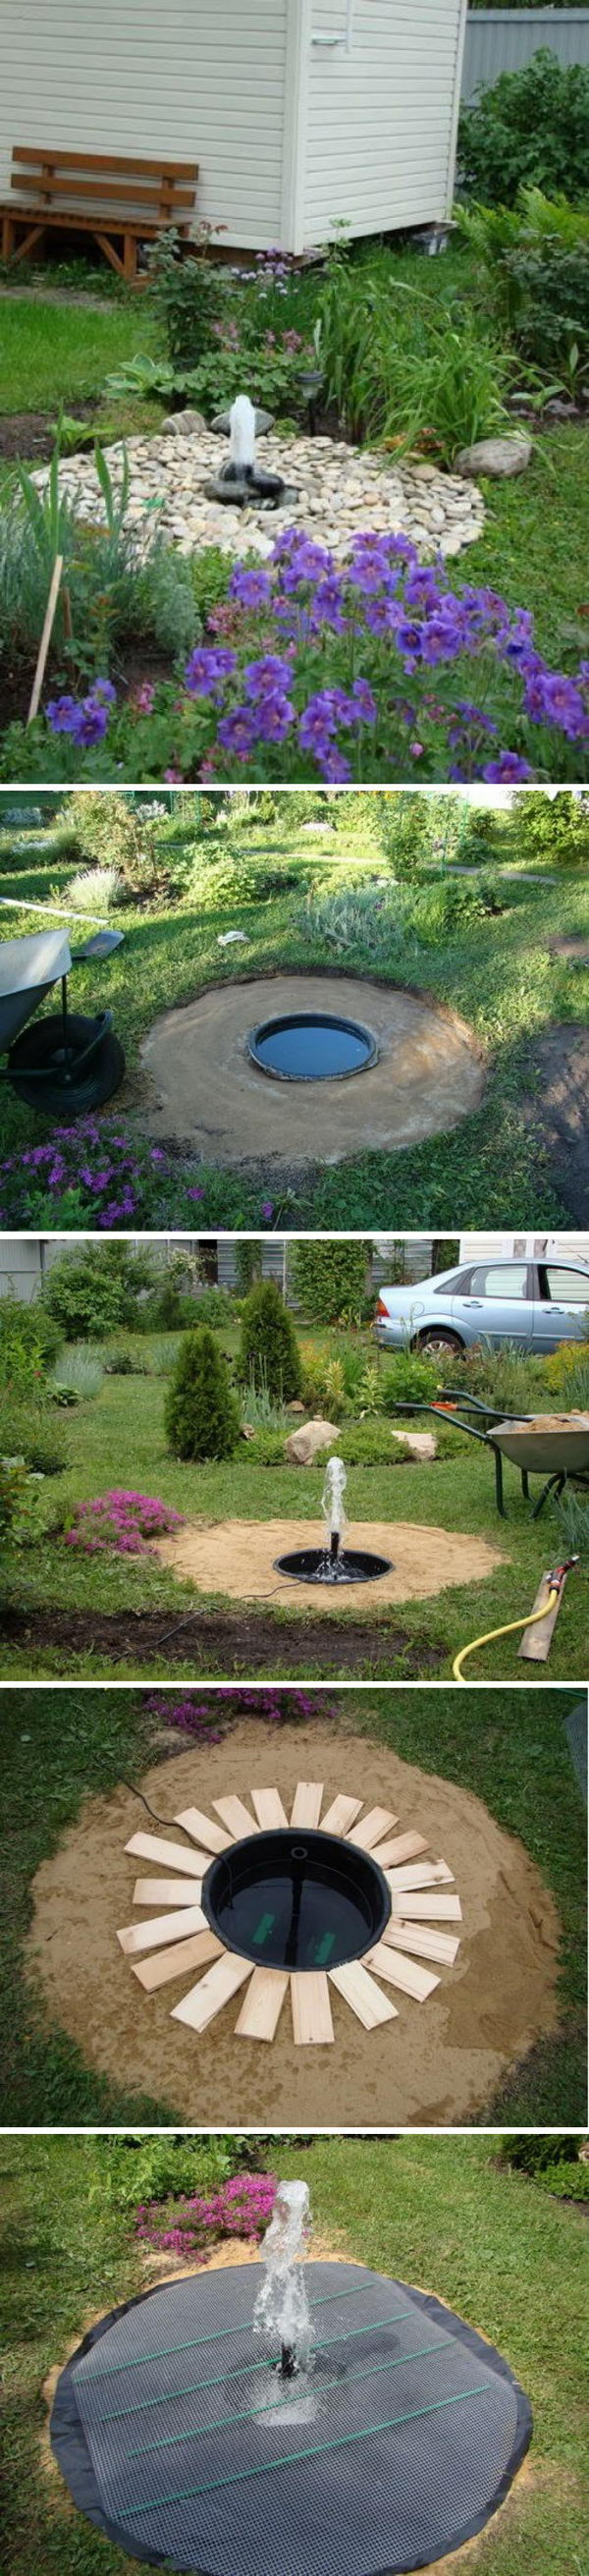 DIY Buried Bubbler Dry Fountain.